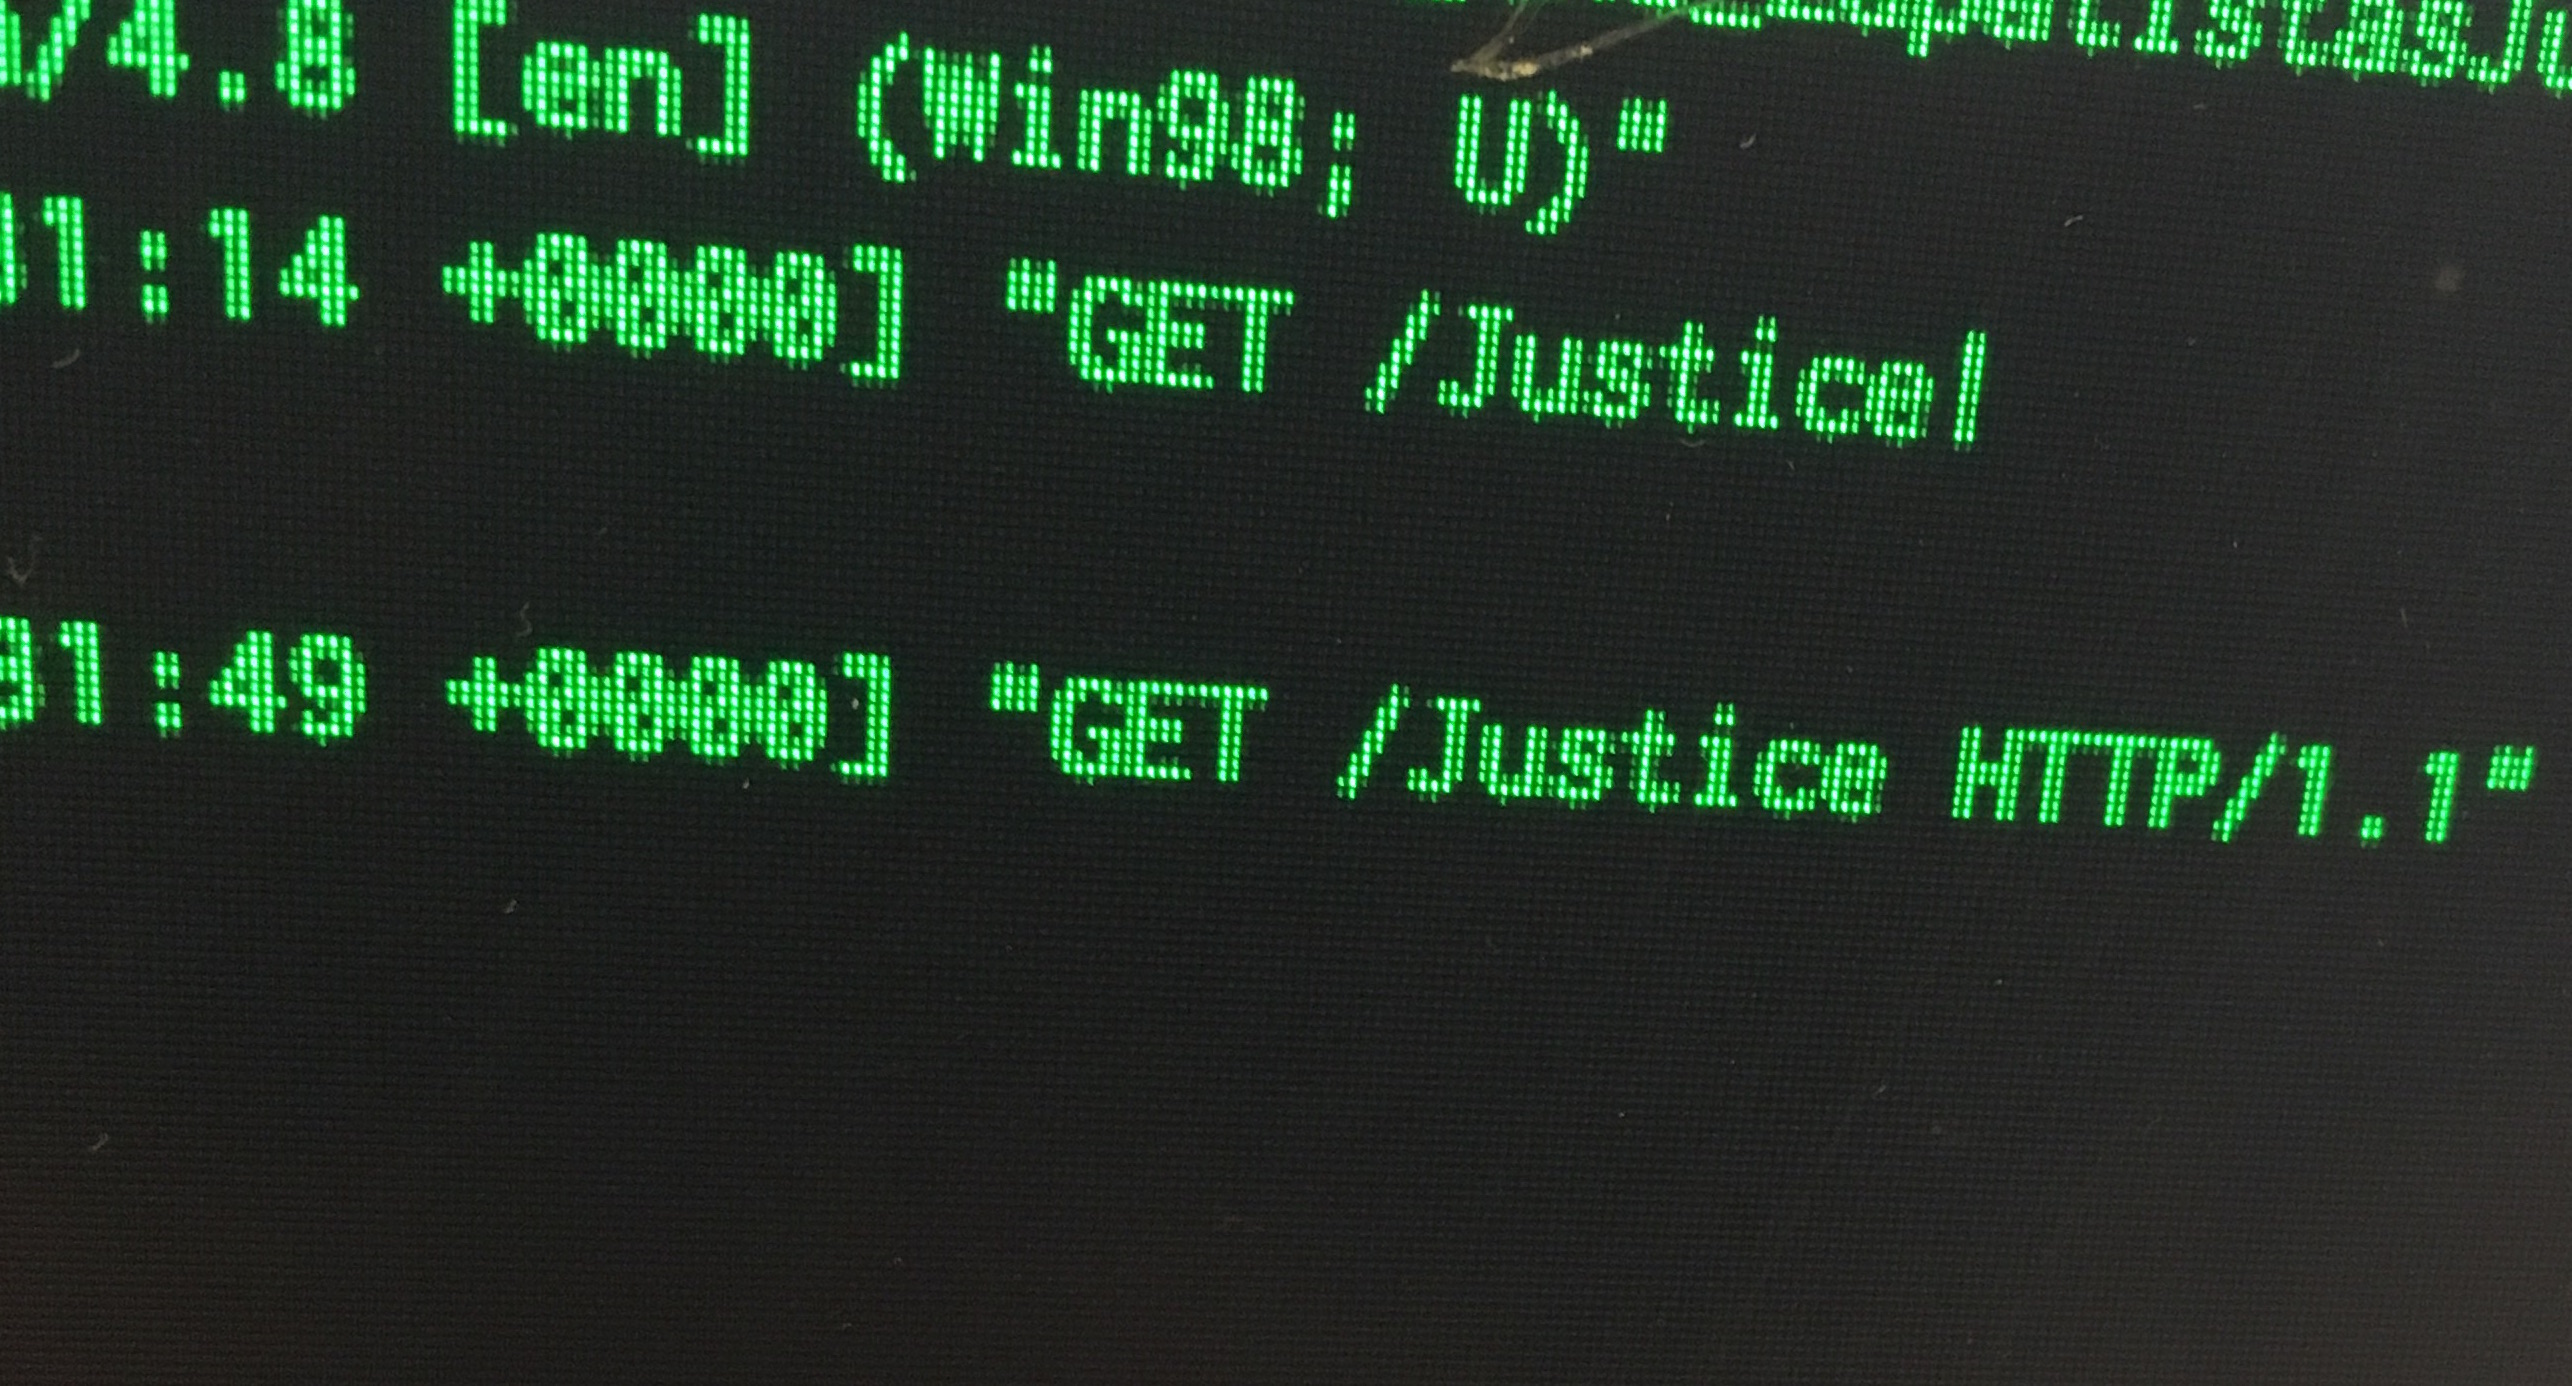 photograph of green text on computer screen reading: 'GET /Justice HTTP/1.1'.